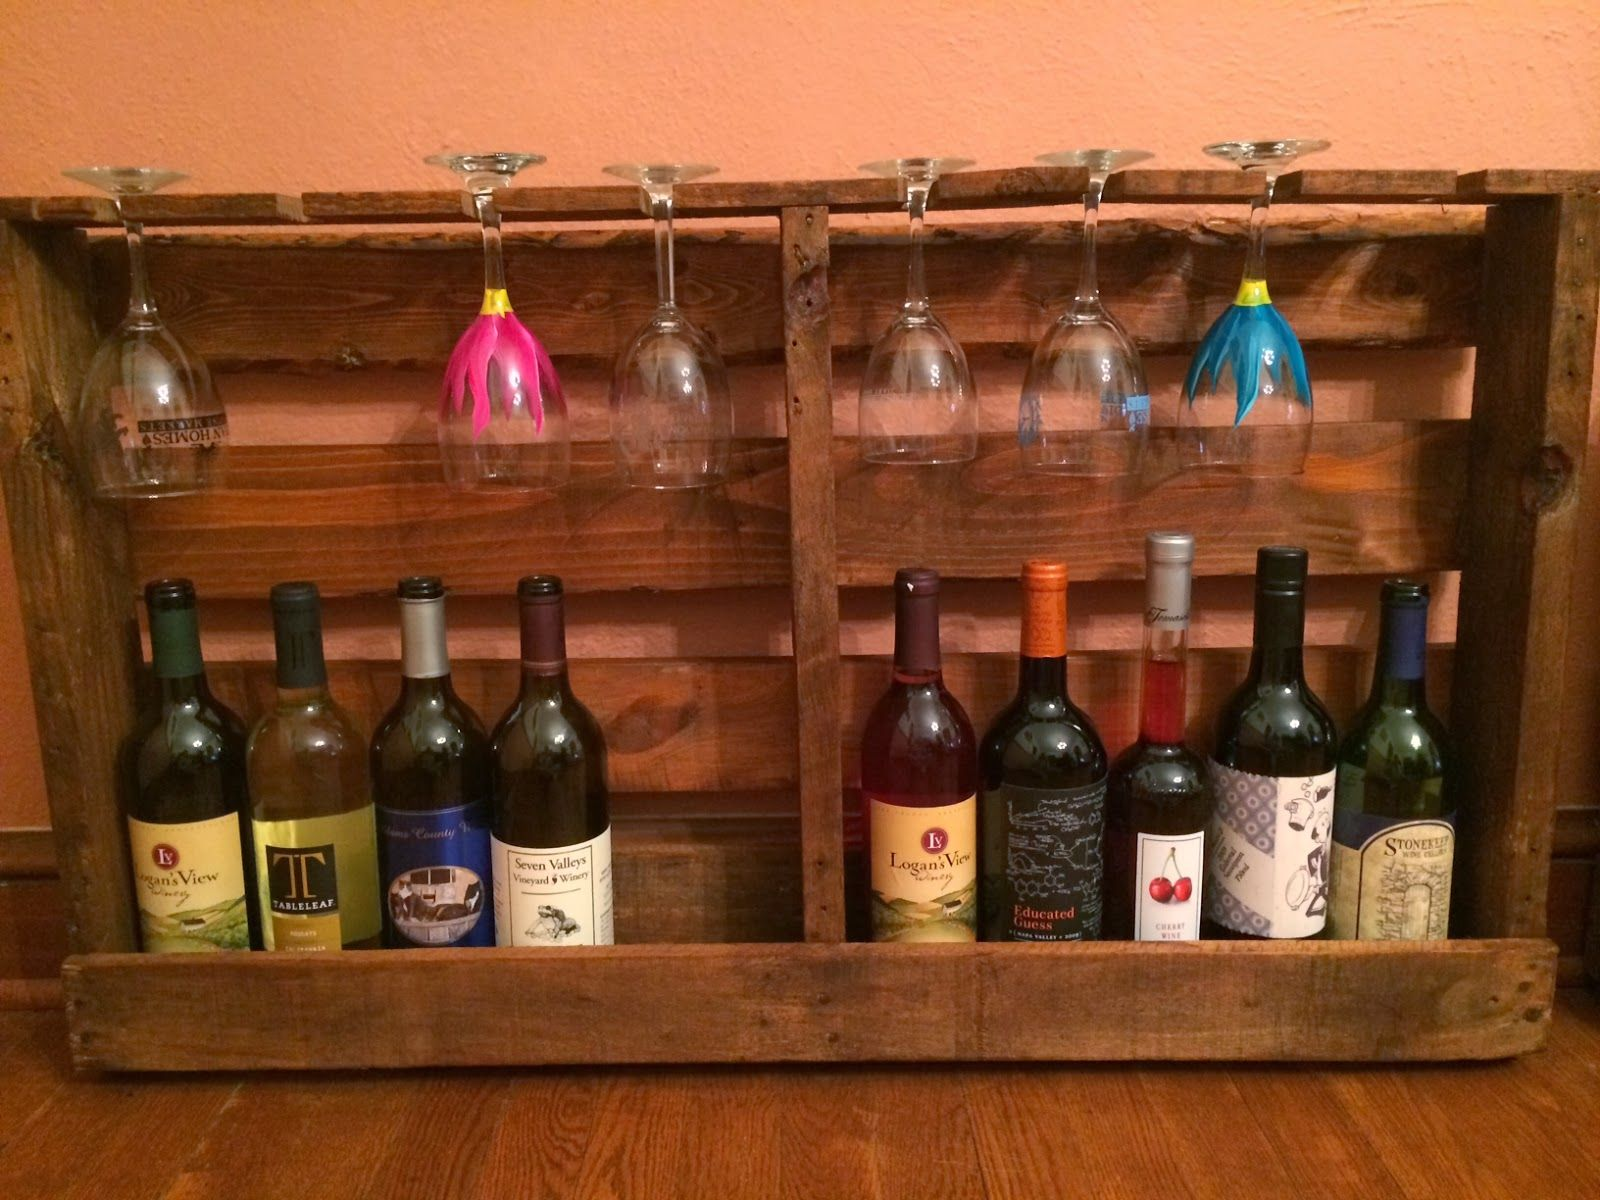 Diy Pallet Wine Bottle Holder - Diy Pallet Wine Rack